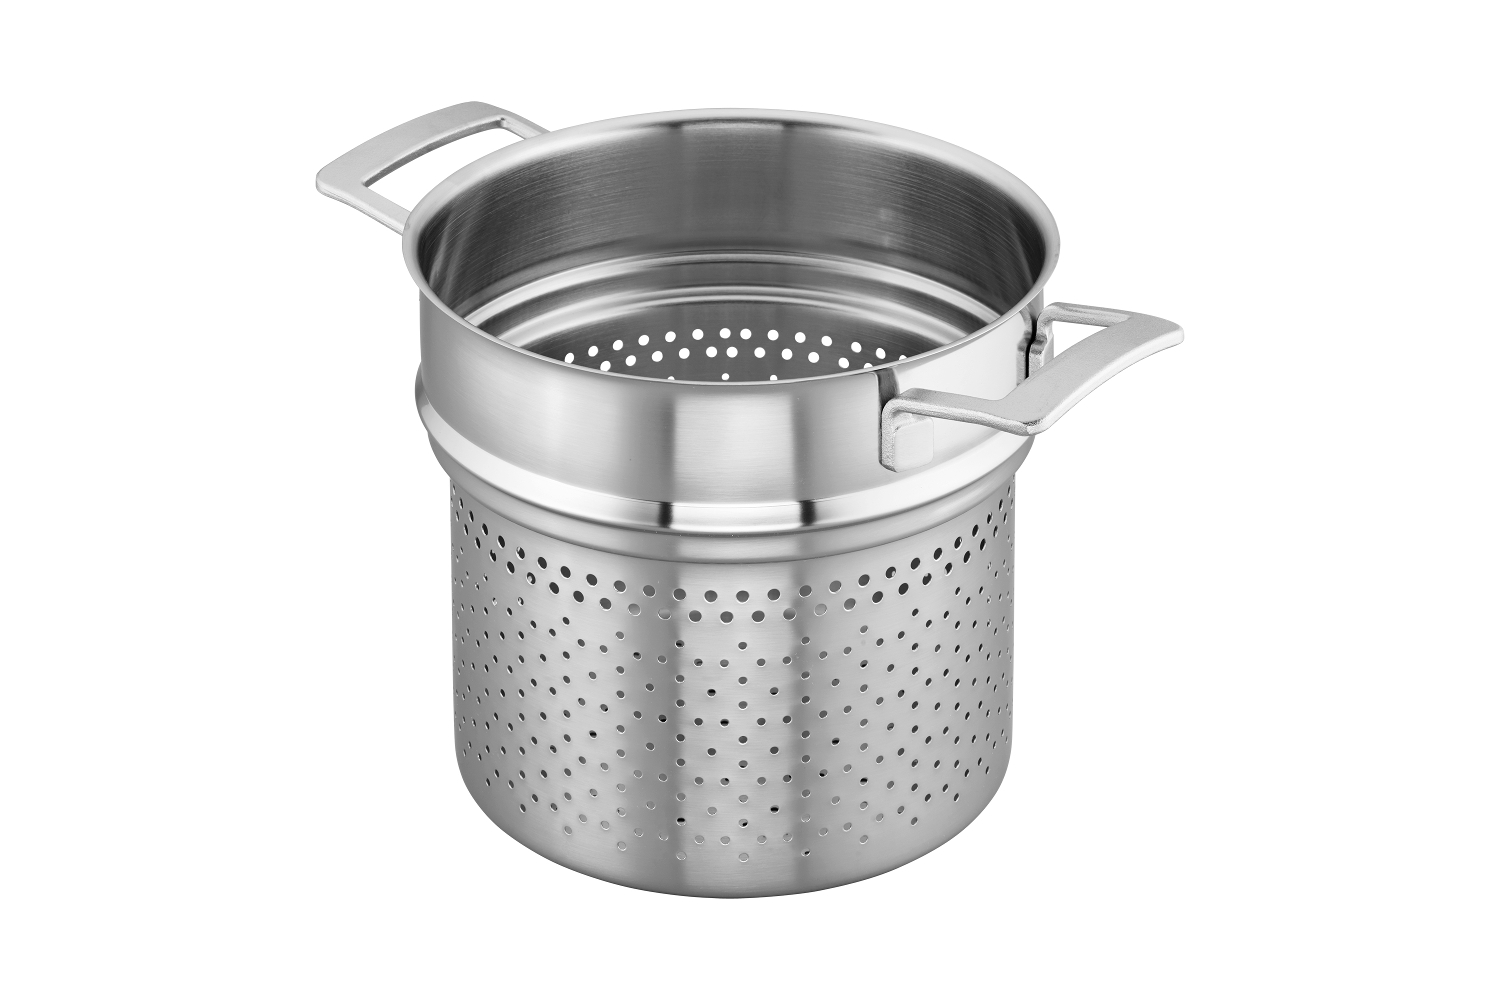 Demeyere Industry5 Stainless Steel 8 qt. Pasta Insert